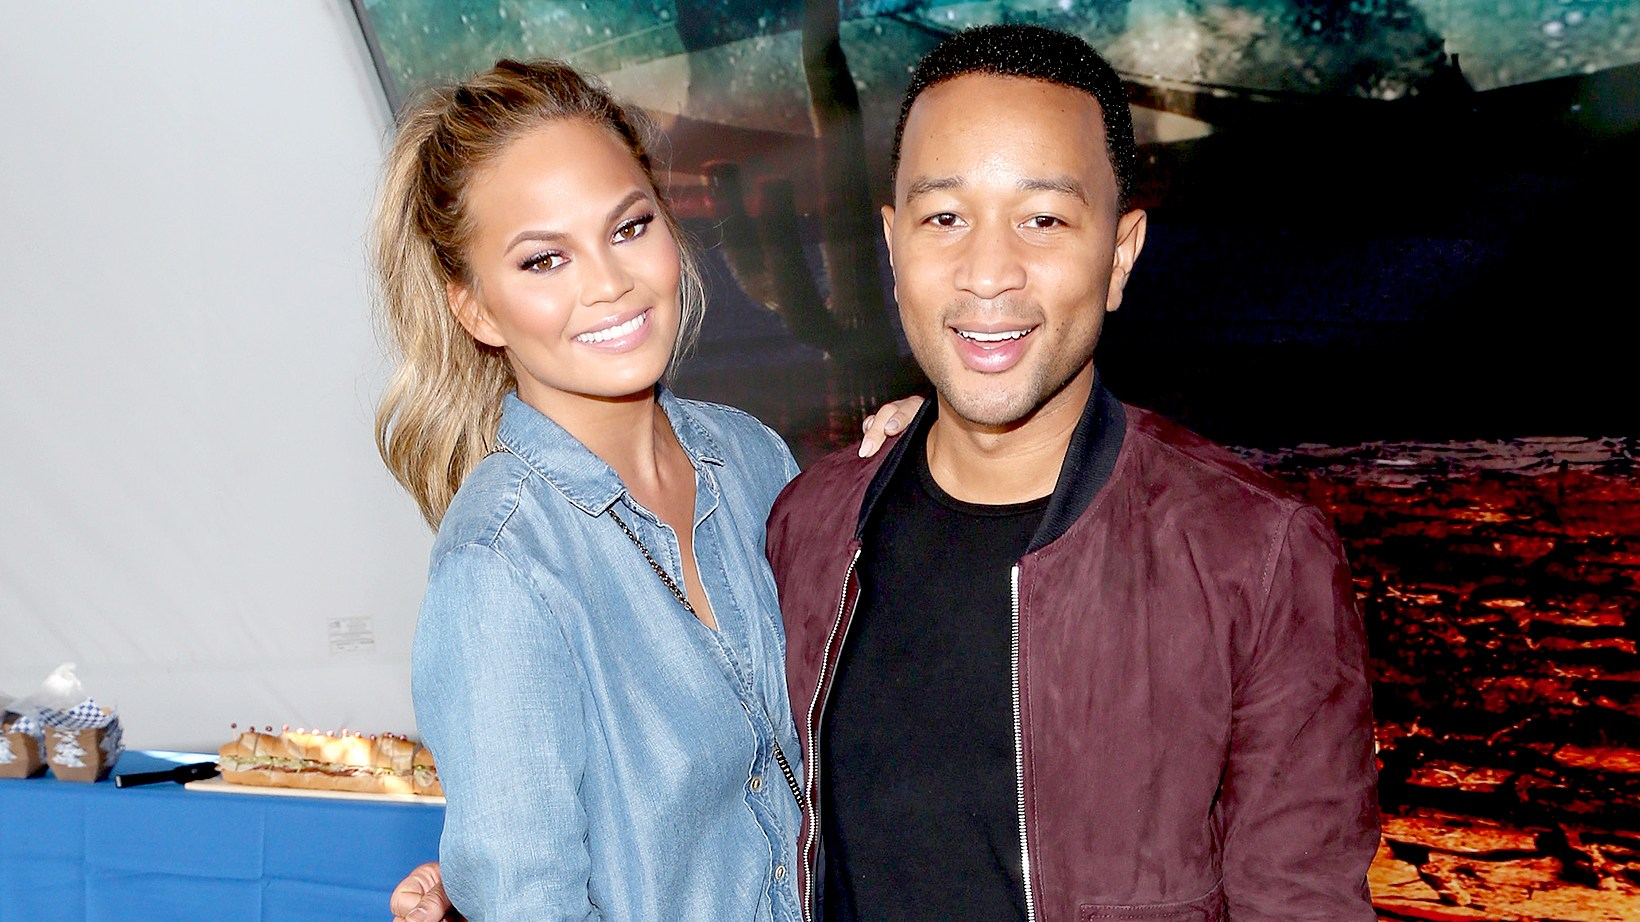 Chrissy Teigen and John Legend attend the DIRECTV Super Fan Tailgate at Pendergast Family Farm on February 1, 2015 in Glendale, Arizona.